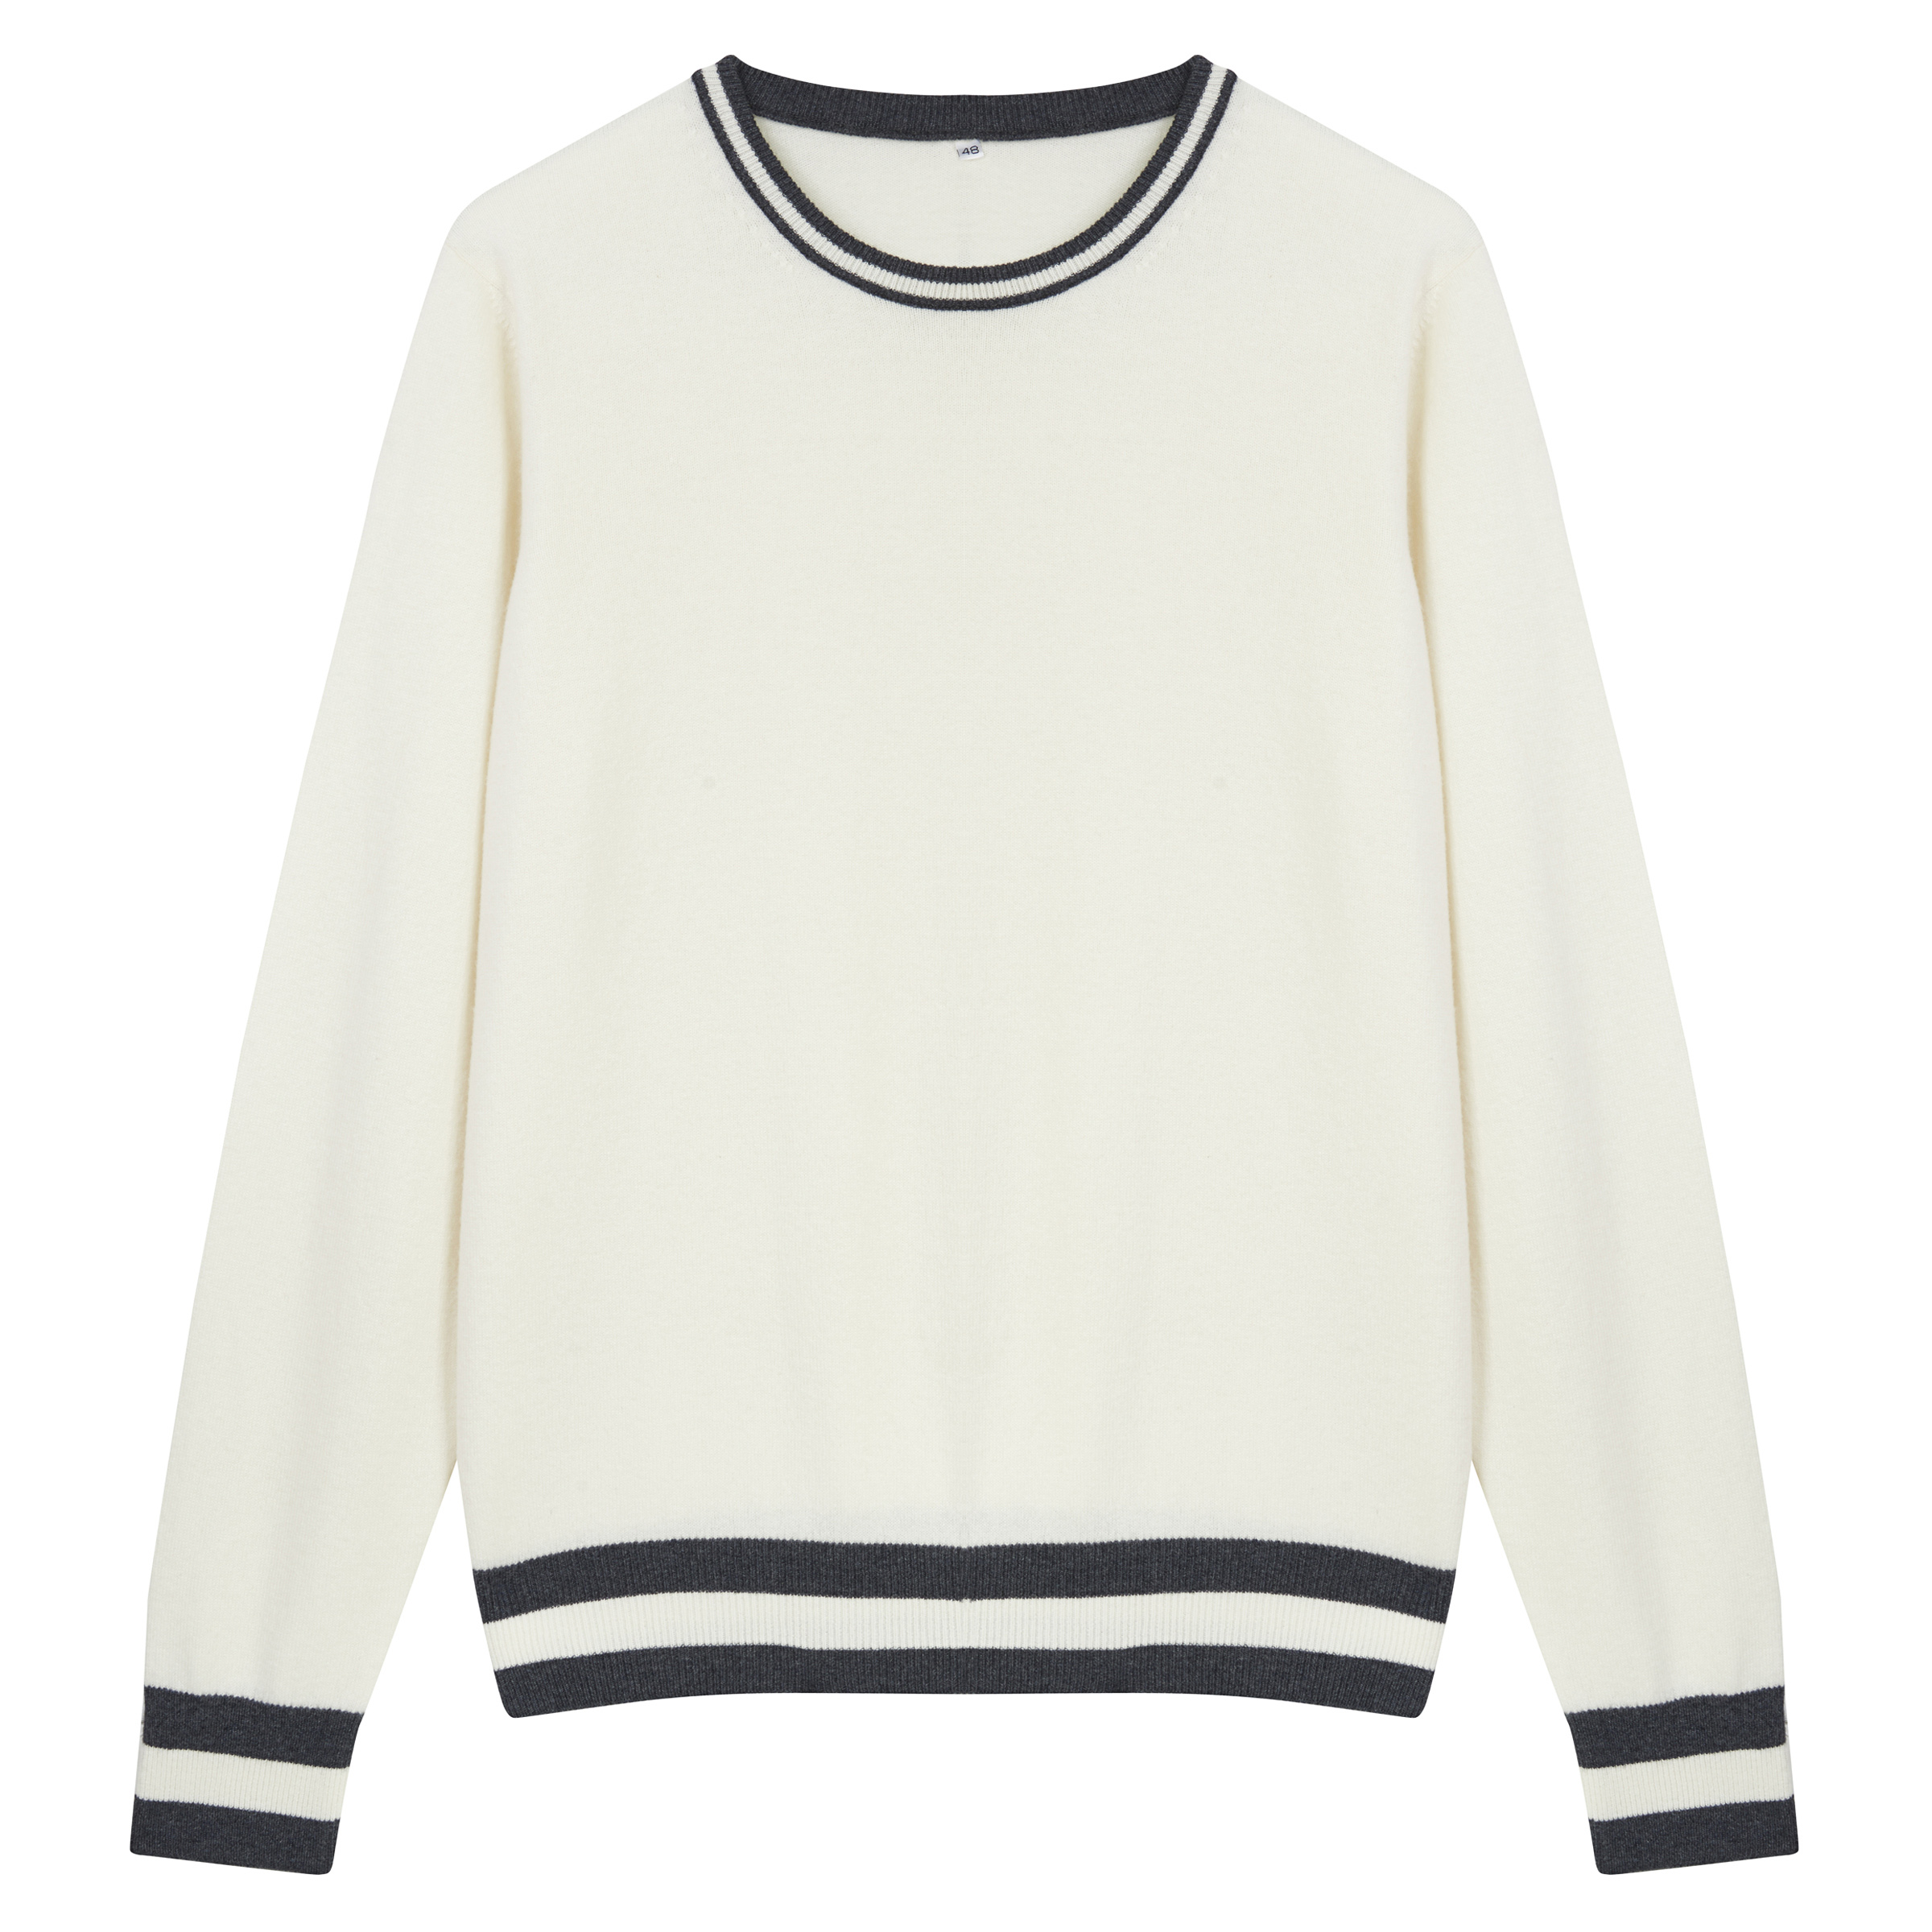 White Wool and Cashmere Charcoal Bands Sweater